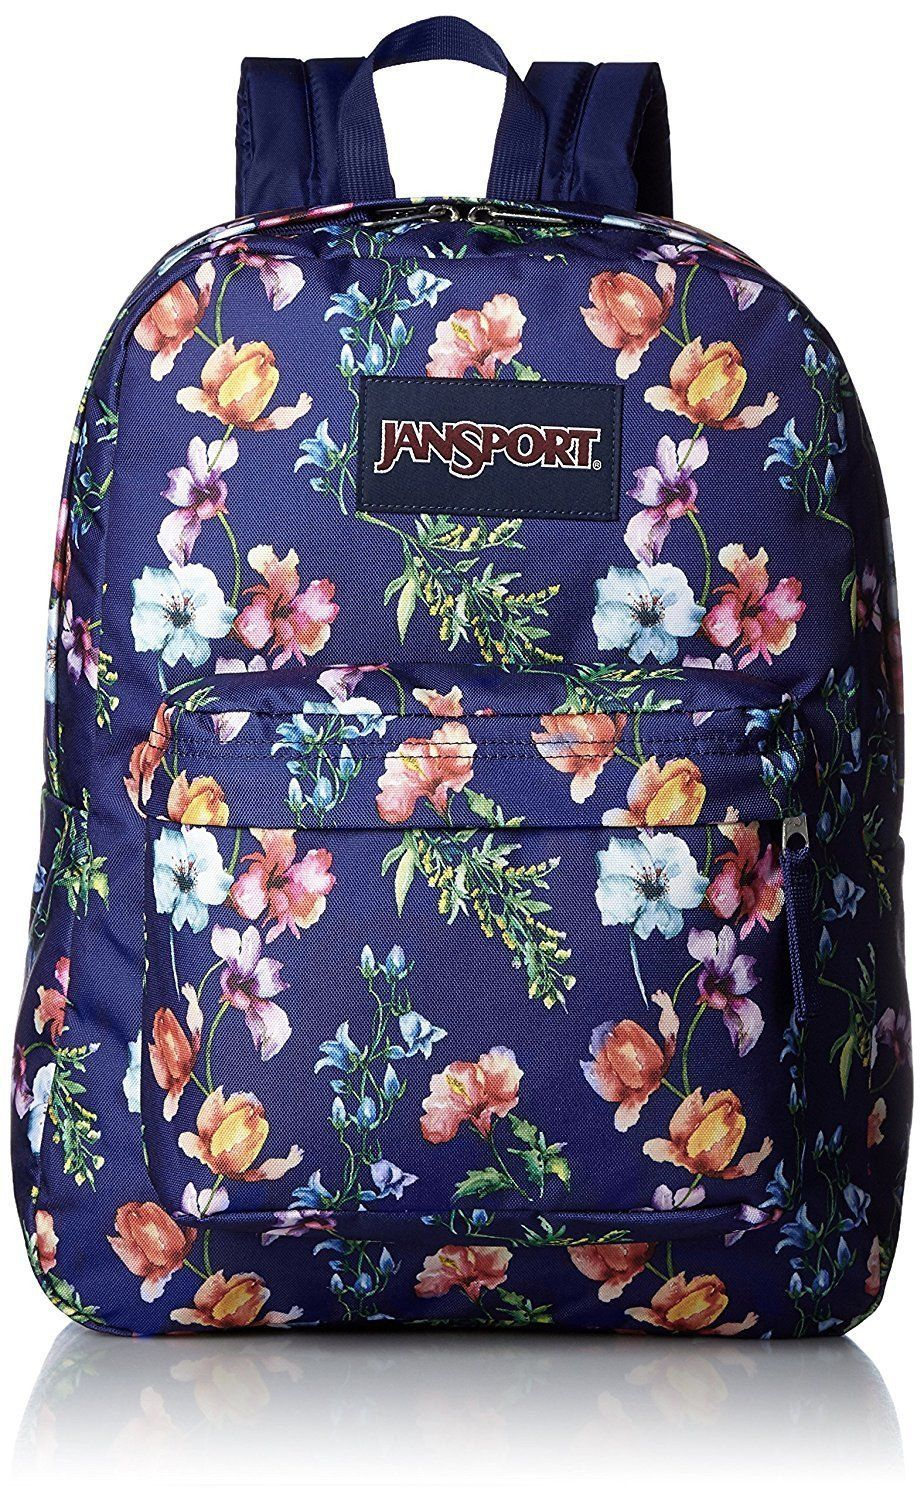 Jansport Superbreak Backpack ( T501 ) - Multi Navy Blue mountain Meadow 9f5beb90e7